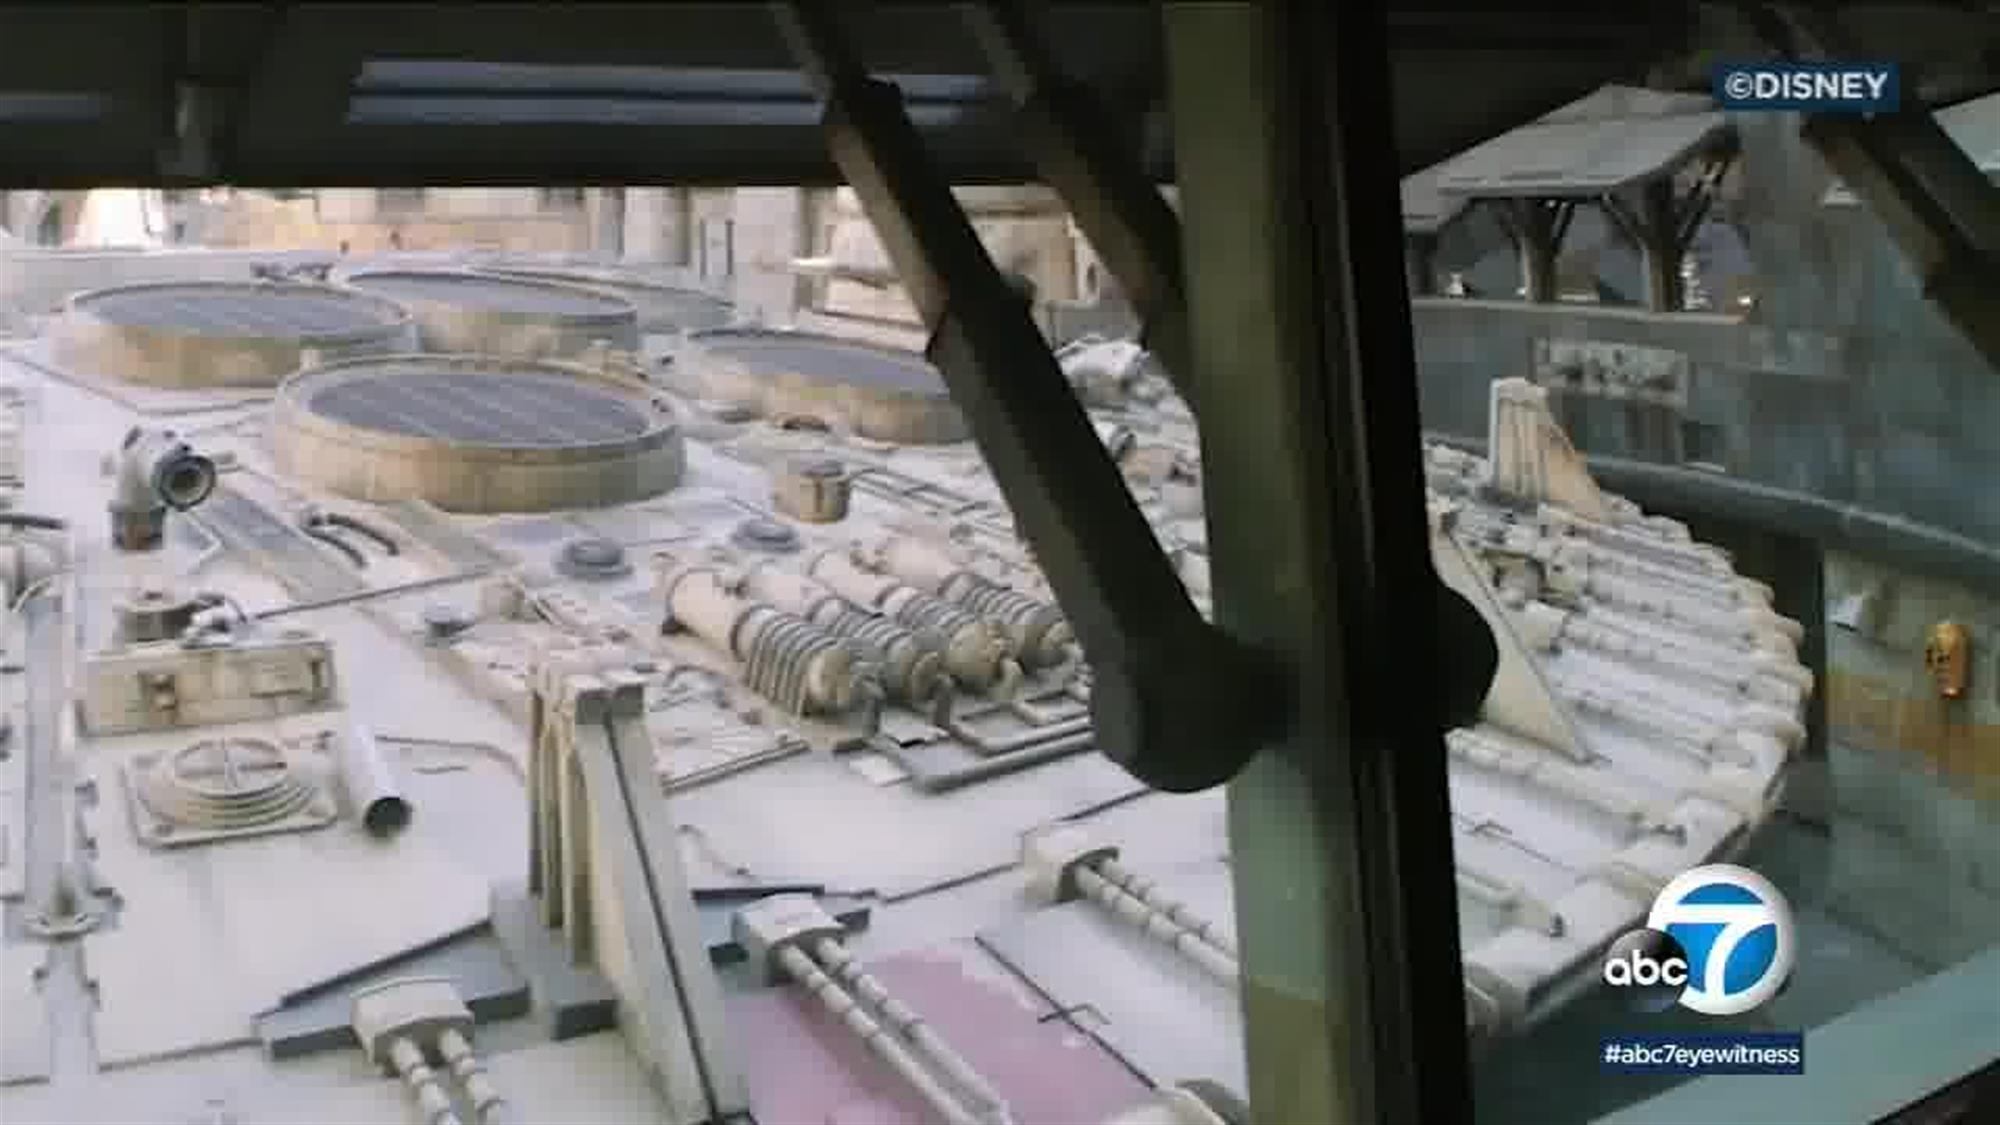 The back side of the Millennium Falcon will be visible from the Smuggler's Run queue, as guests prepare to board the ship that once belonged to Lando Calrissian, then Han Solo, then Rey.